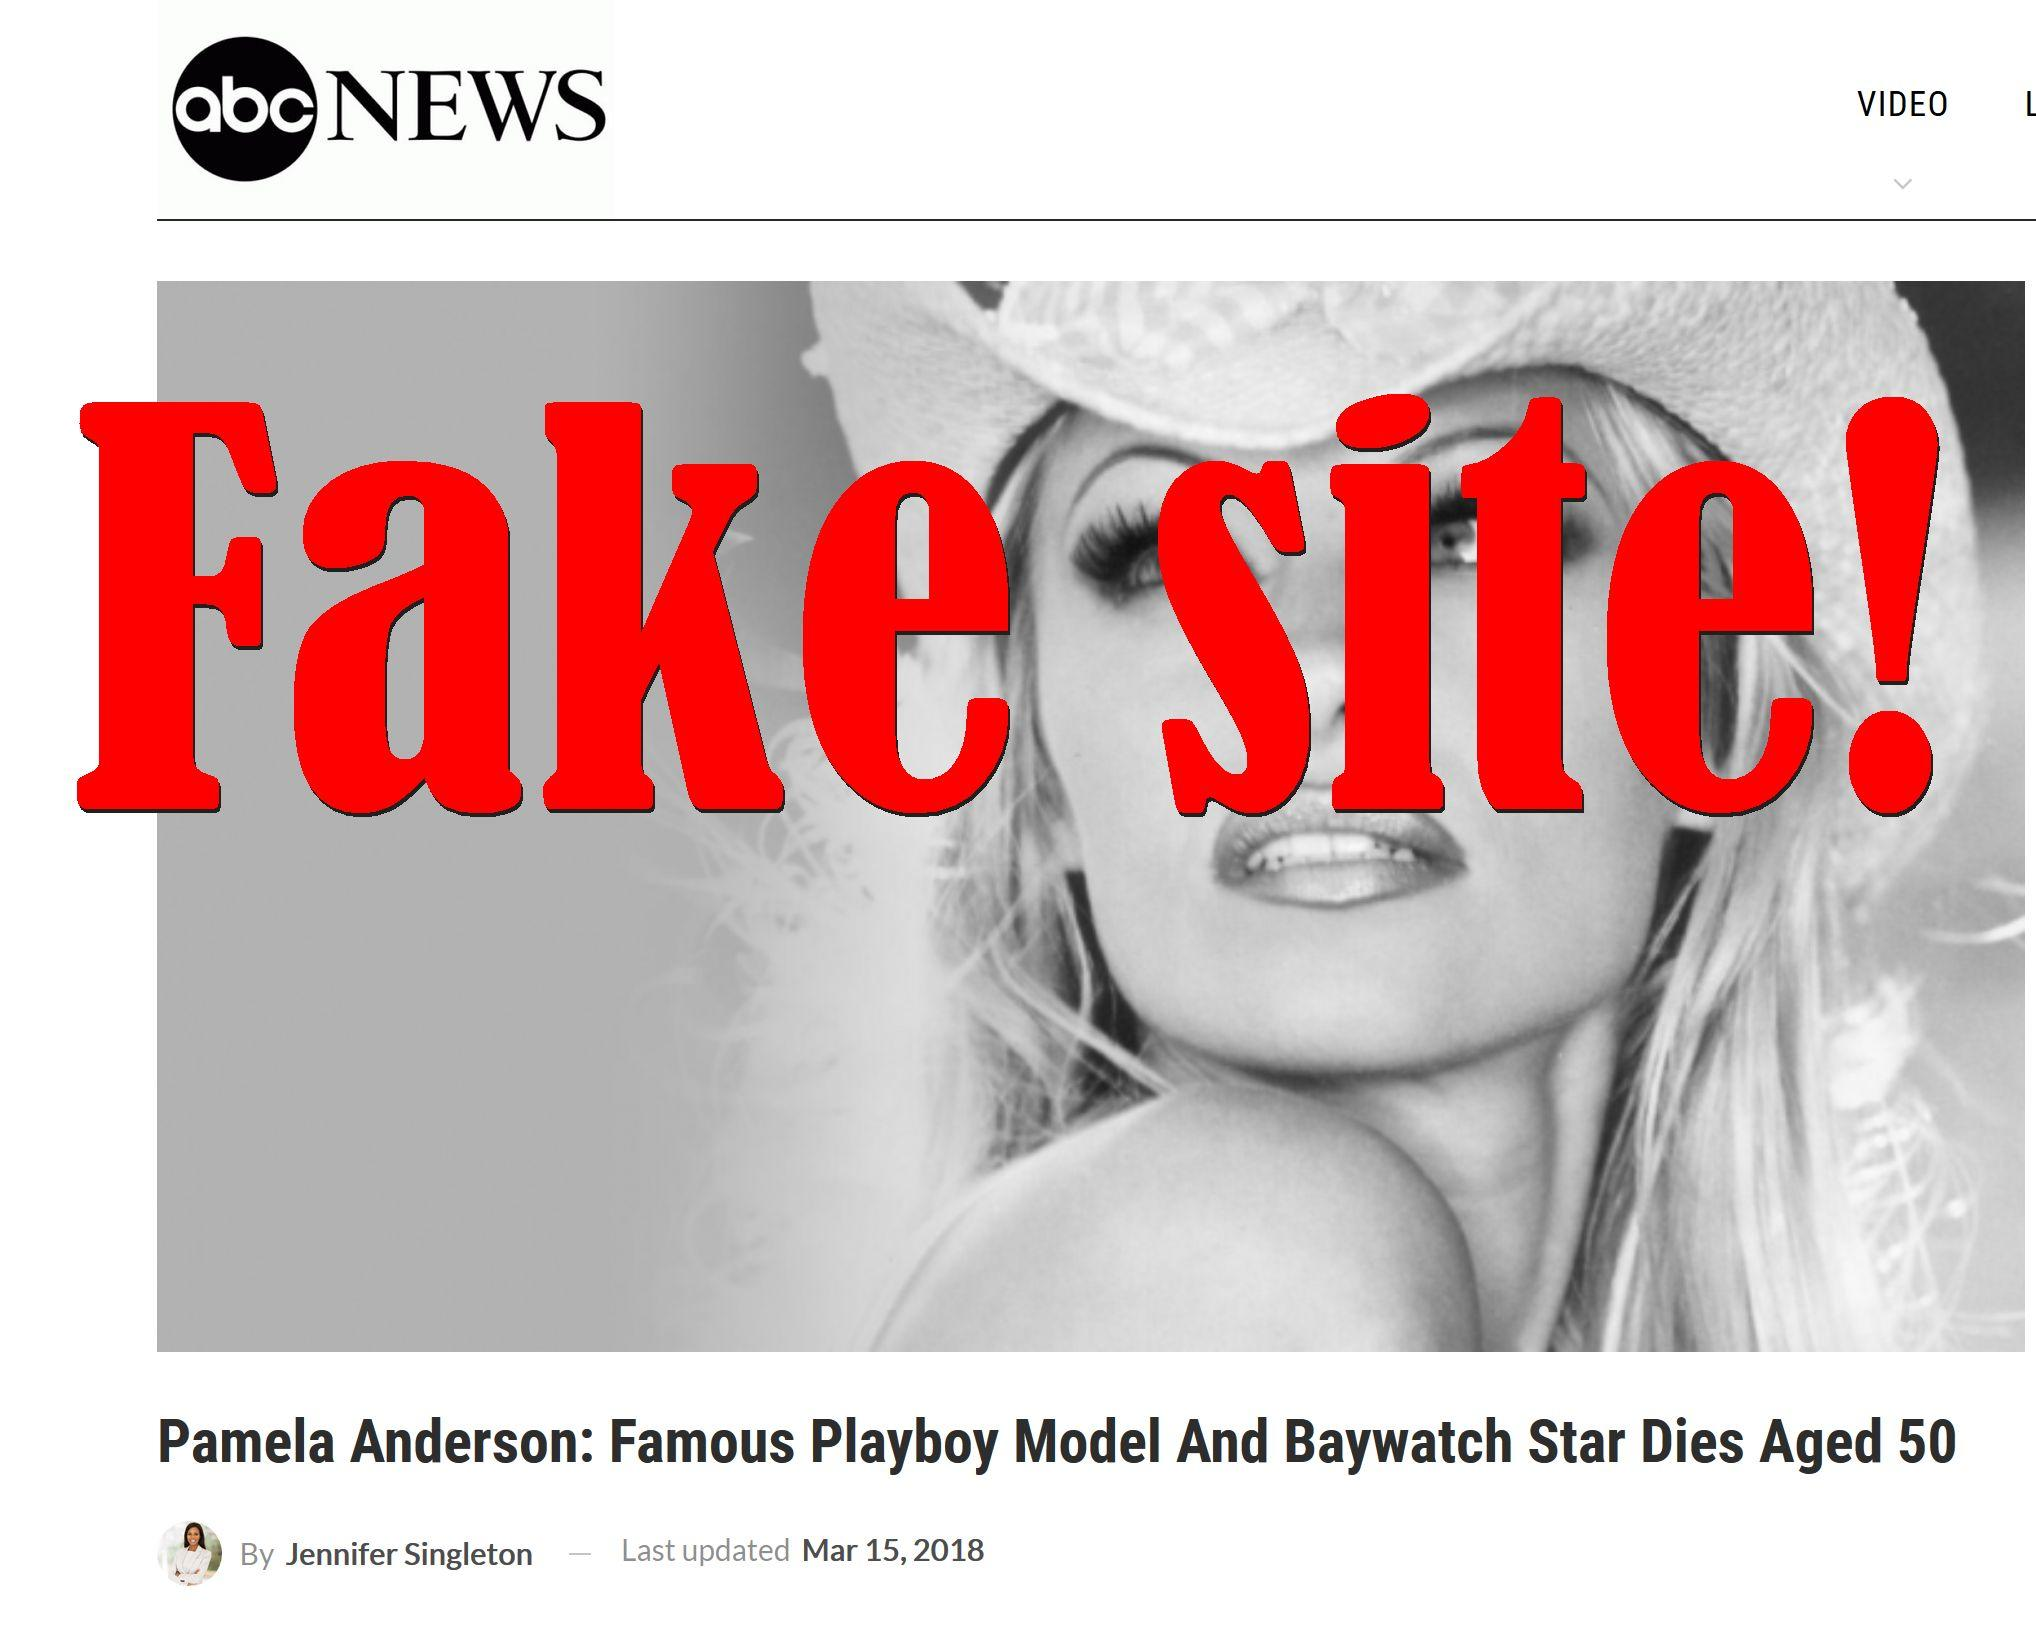 Fake News: Pamela Anderson, Famous Playboy Model and Baywatch Star Did NOT Die Aged 50